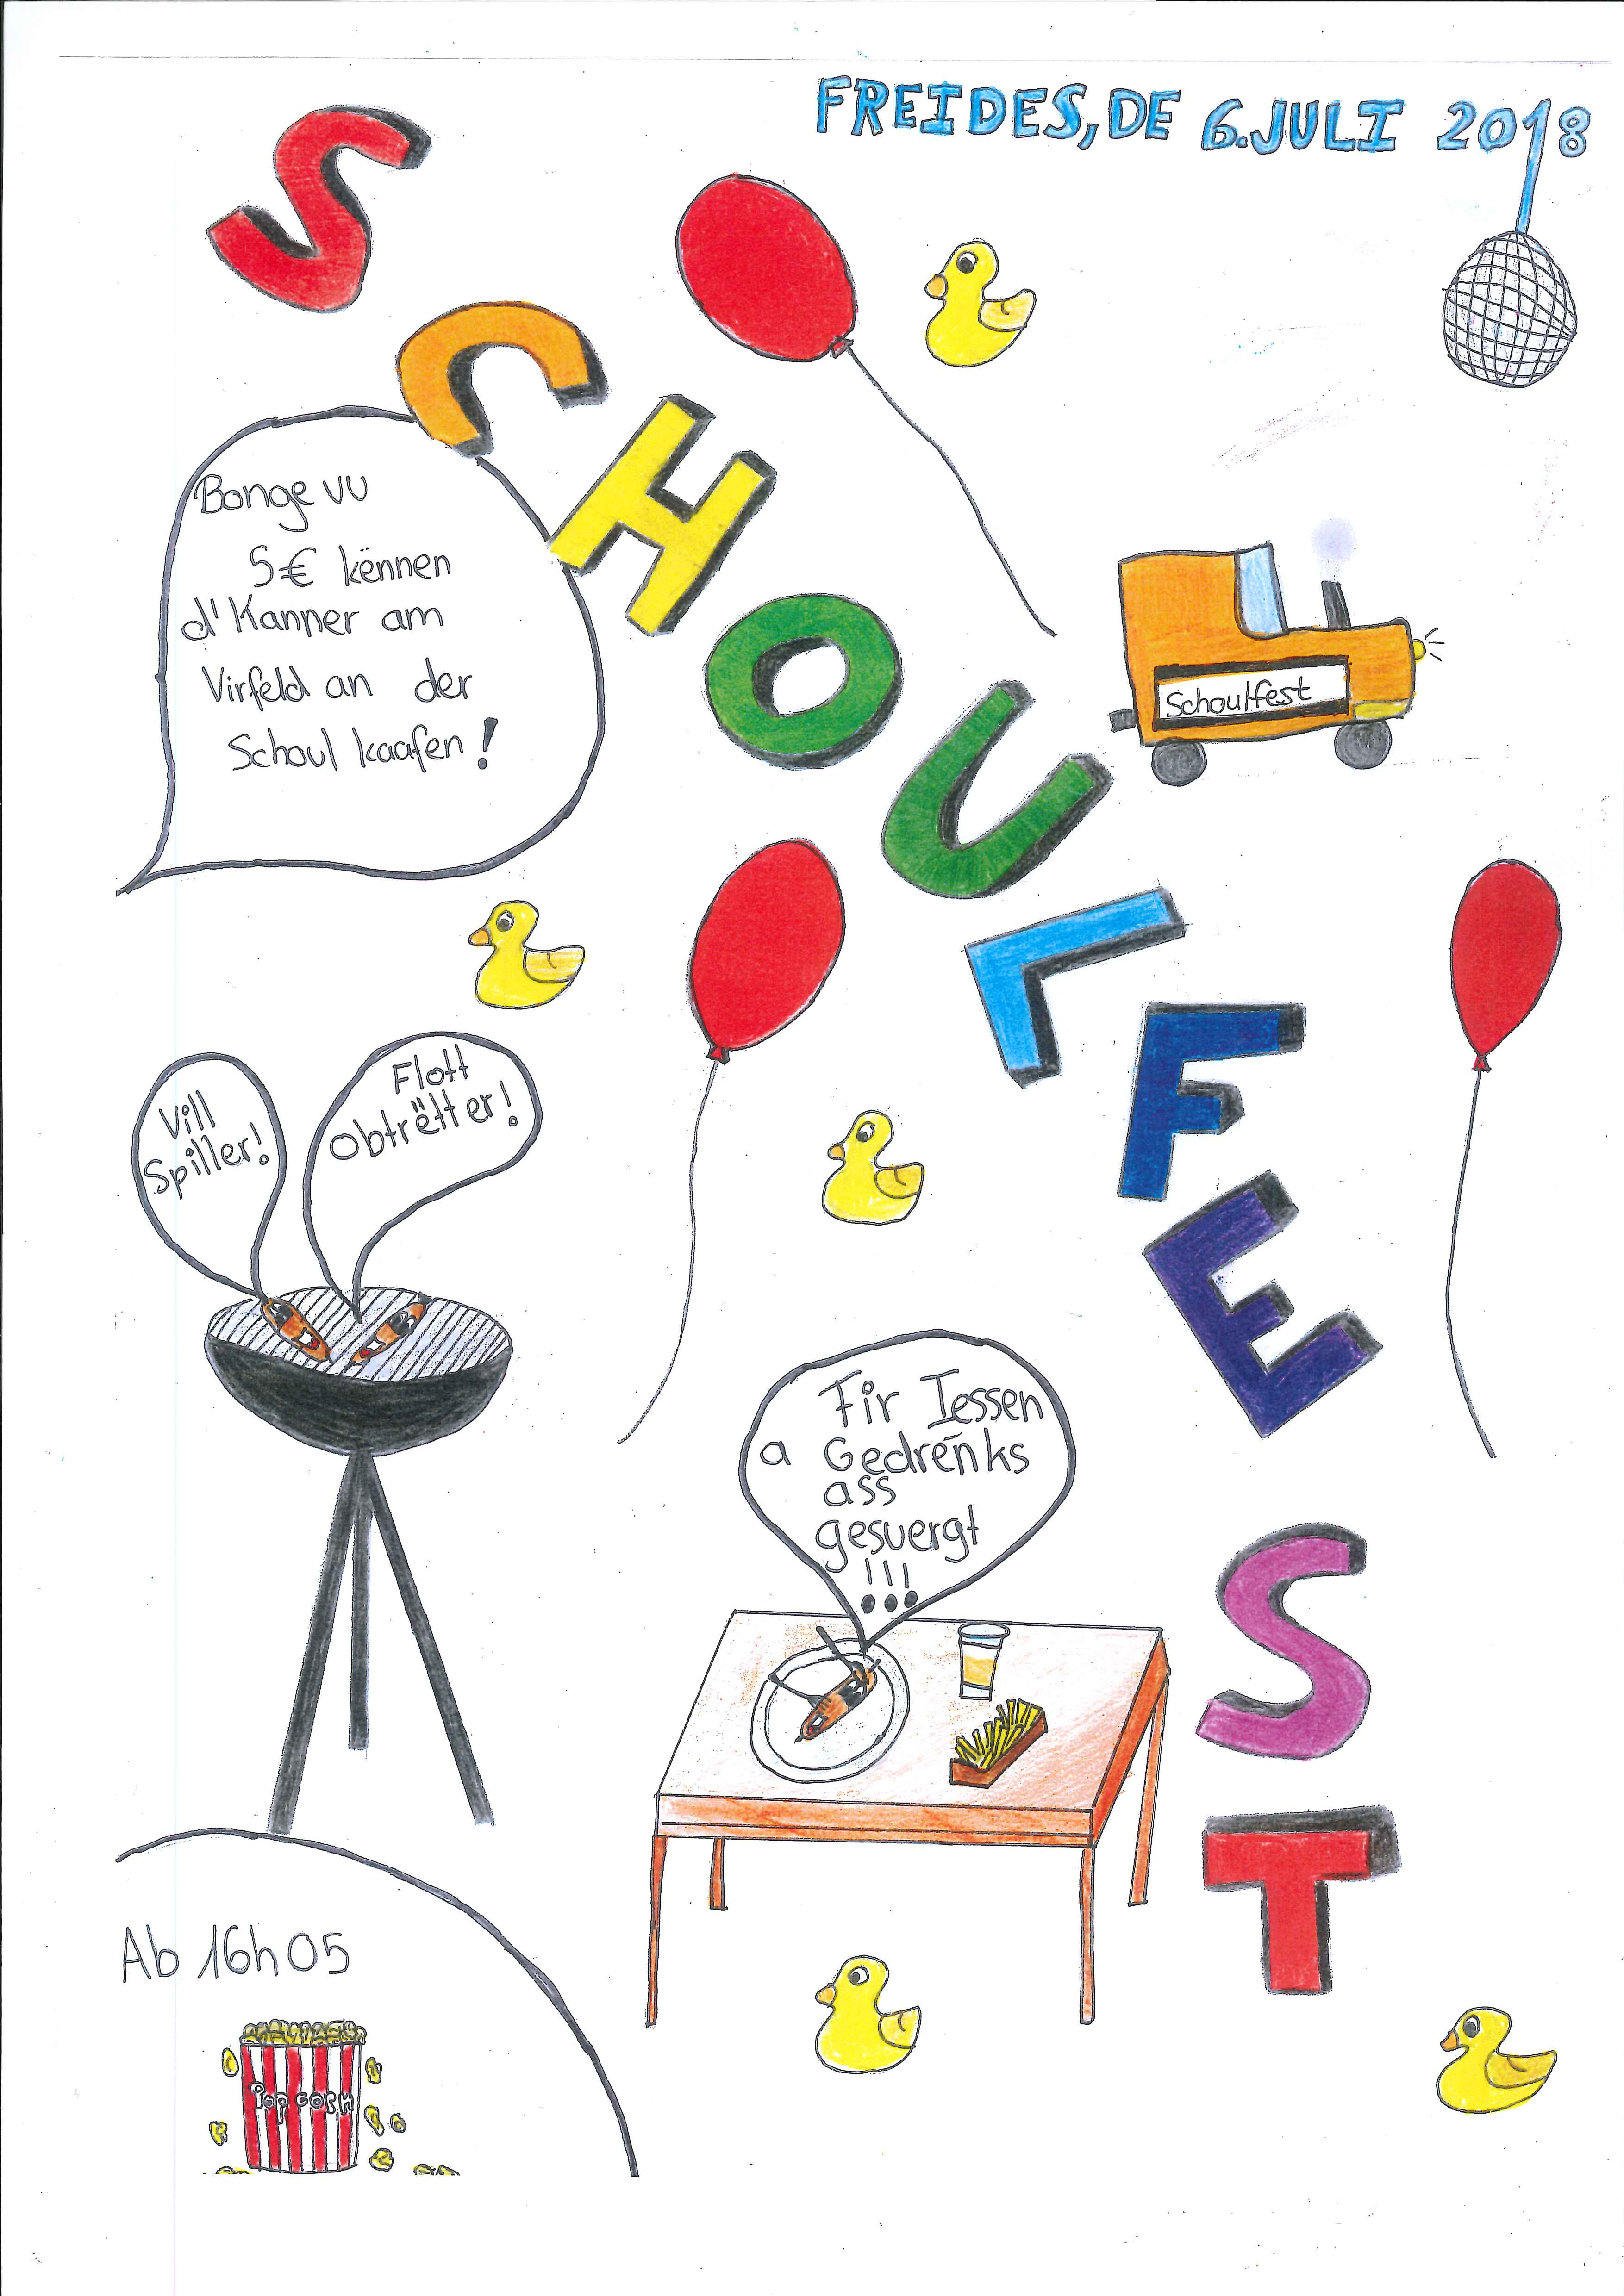 Schoulfest - Fête scolaire (Schoul Rued-Syr)